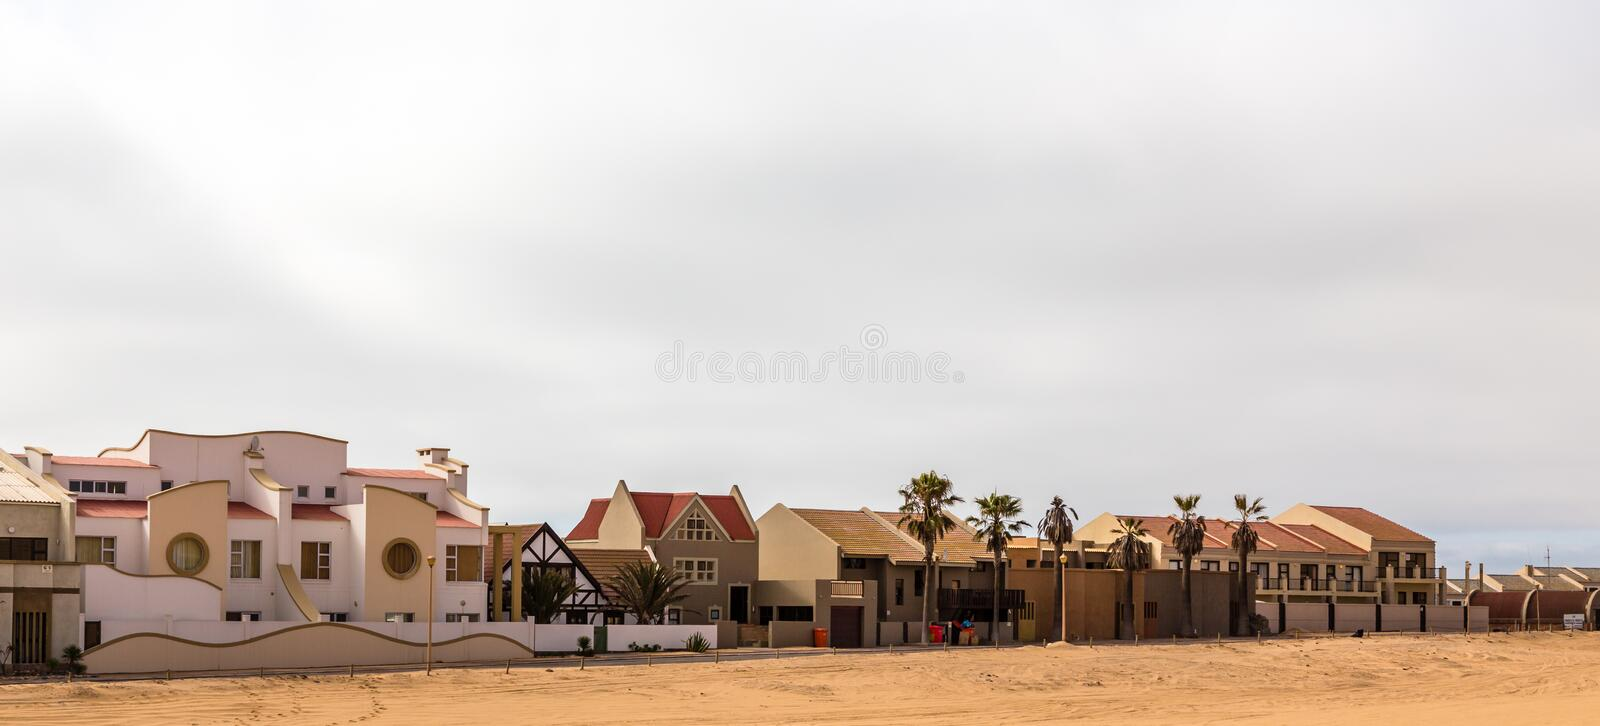 Modern touristic cottages of Dolfynstrand resort at the seaside, close to Walvis Bay, Namibia royalty free stock photos